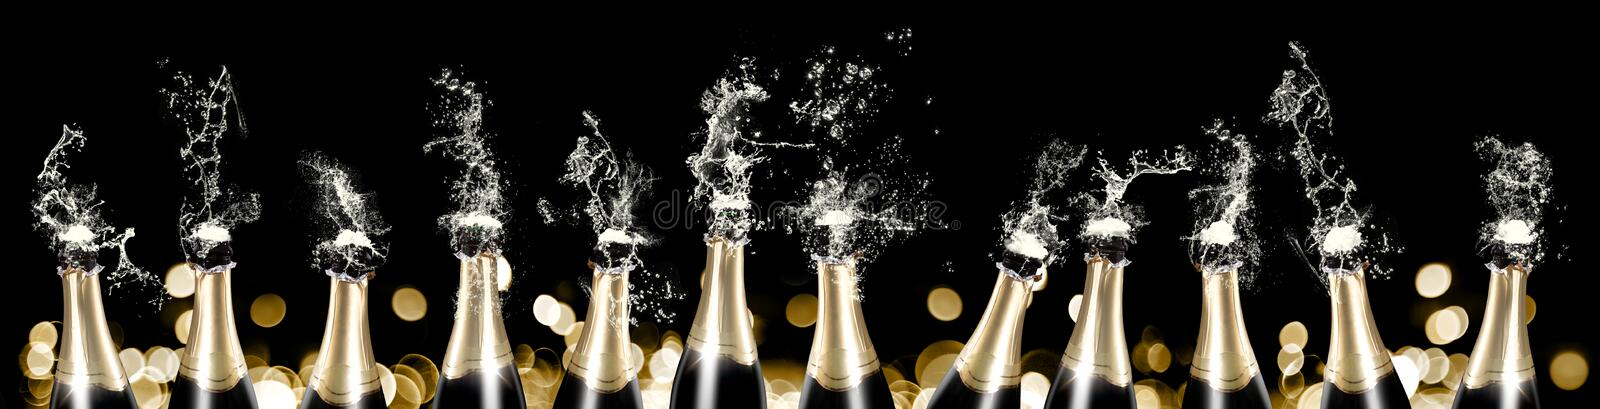 Foaming and splashing champagne bottles banner royalty free stock photo